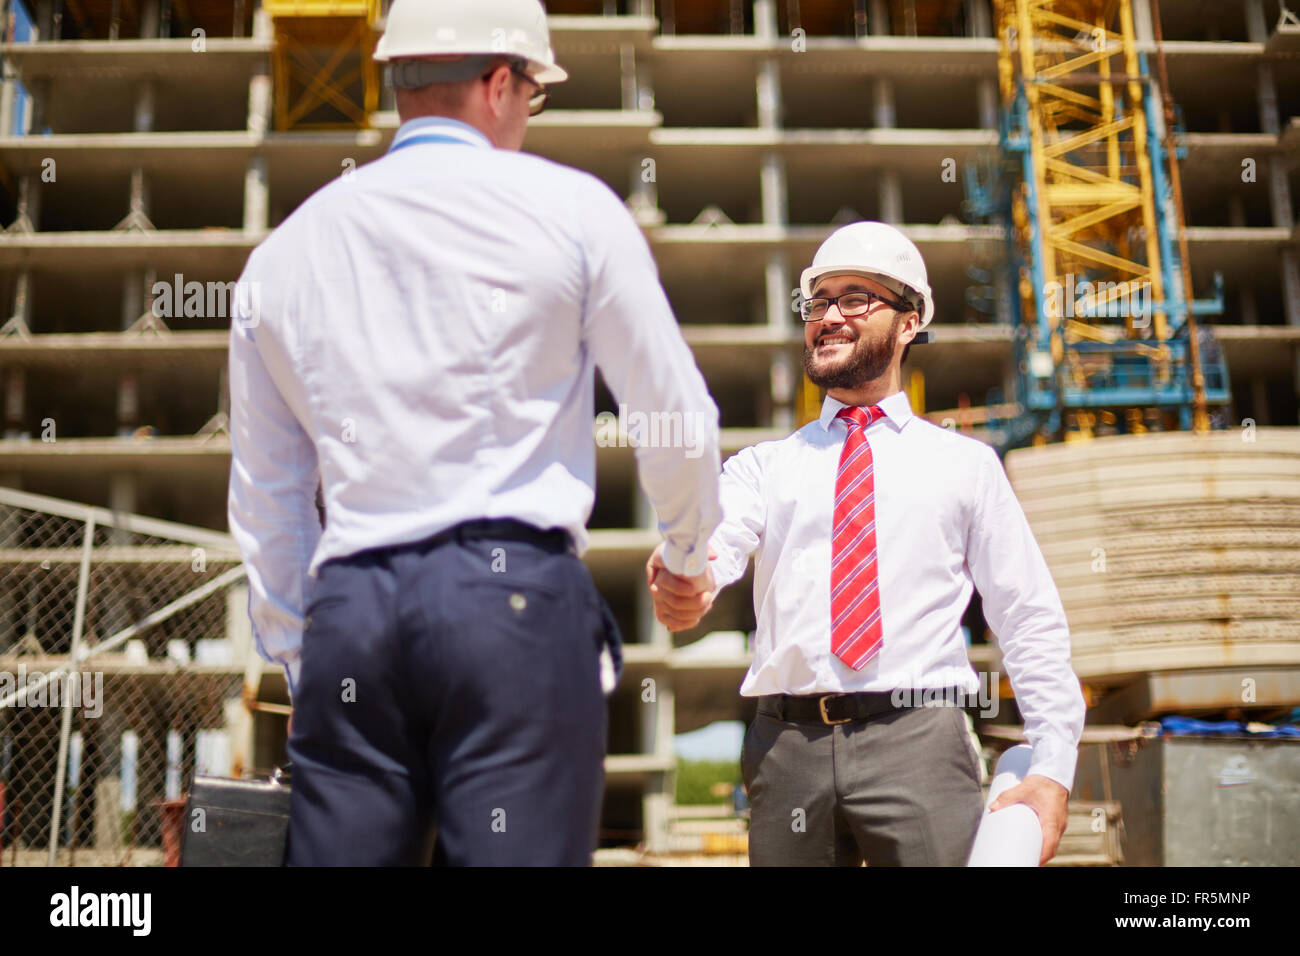 Young businessmen in hard hats shaking hands - Stock Image